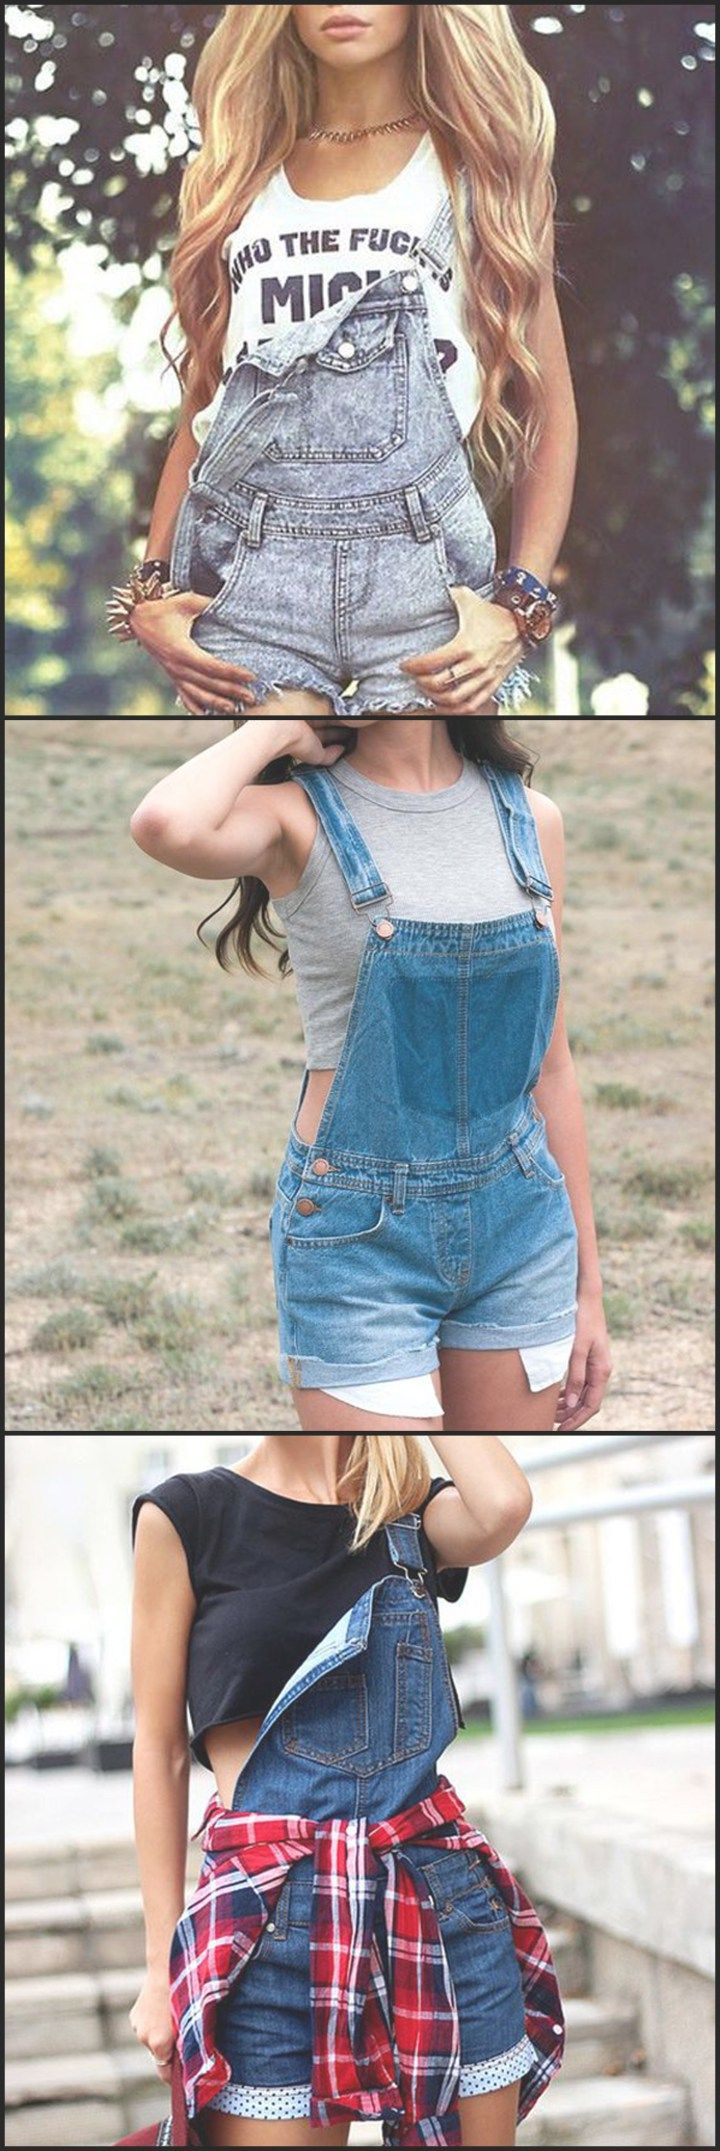 Cute Denim Overalls Shorts Casual Outfit Ideas for Women for Teens with Crop Top Fashion 2017 at Brikiniz.com